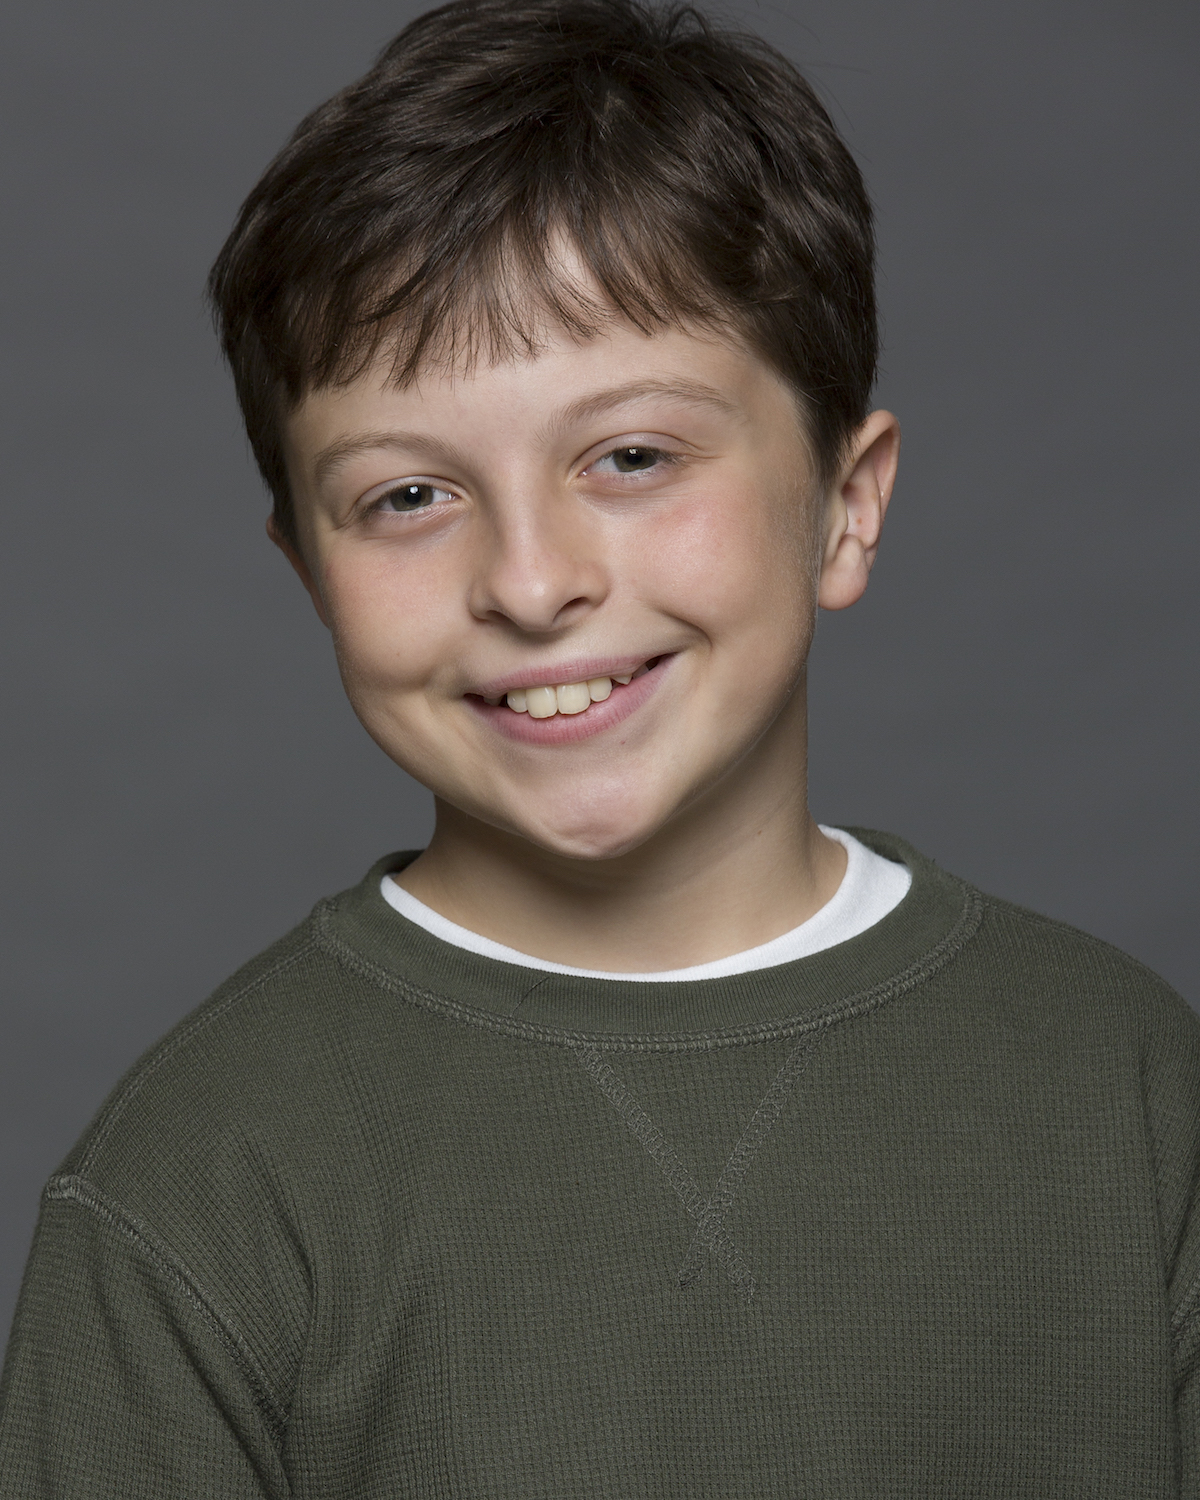 Holden Goyette (adolescent les) - Holden Goyette, who plays